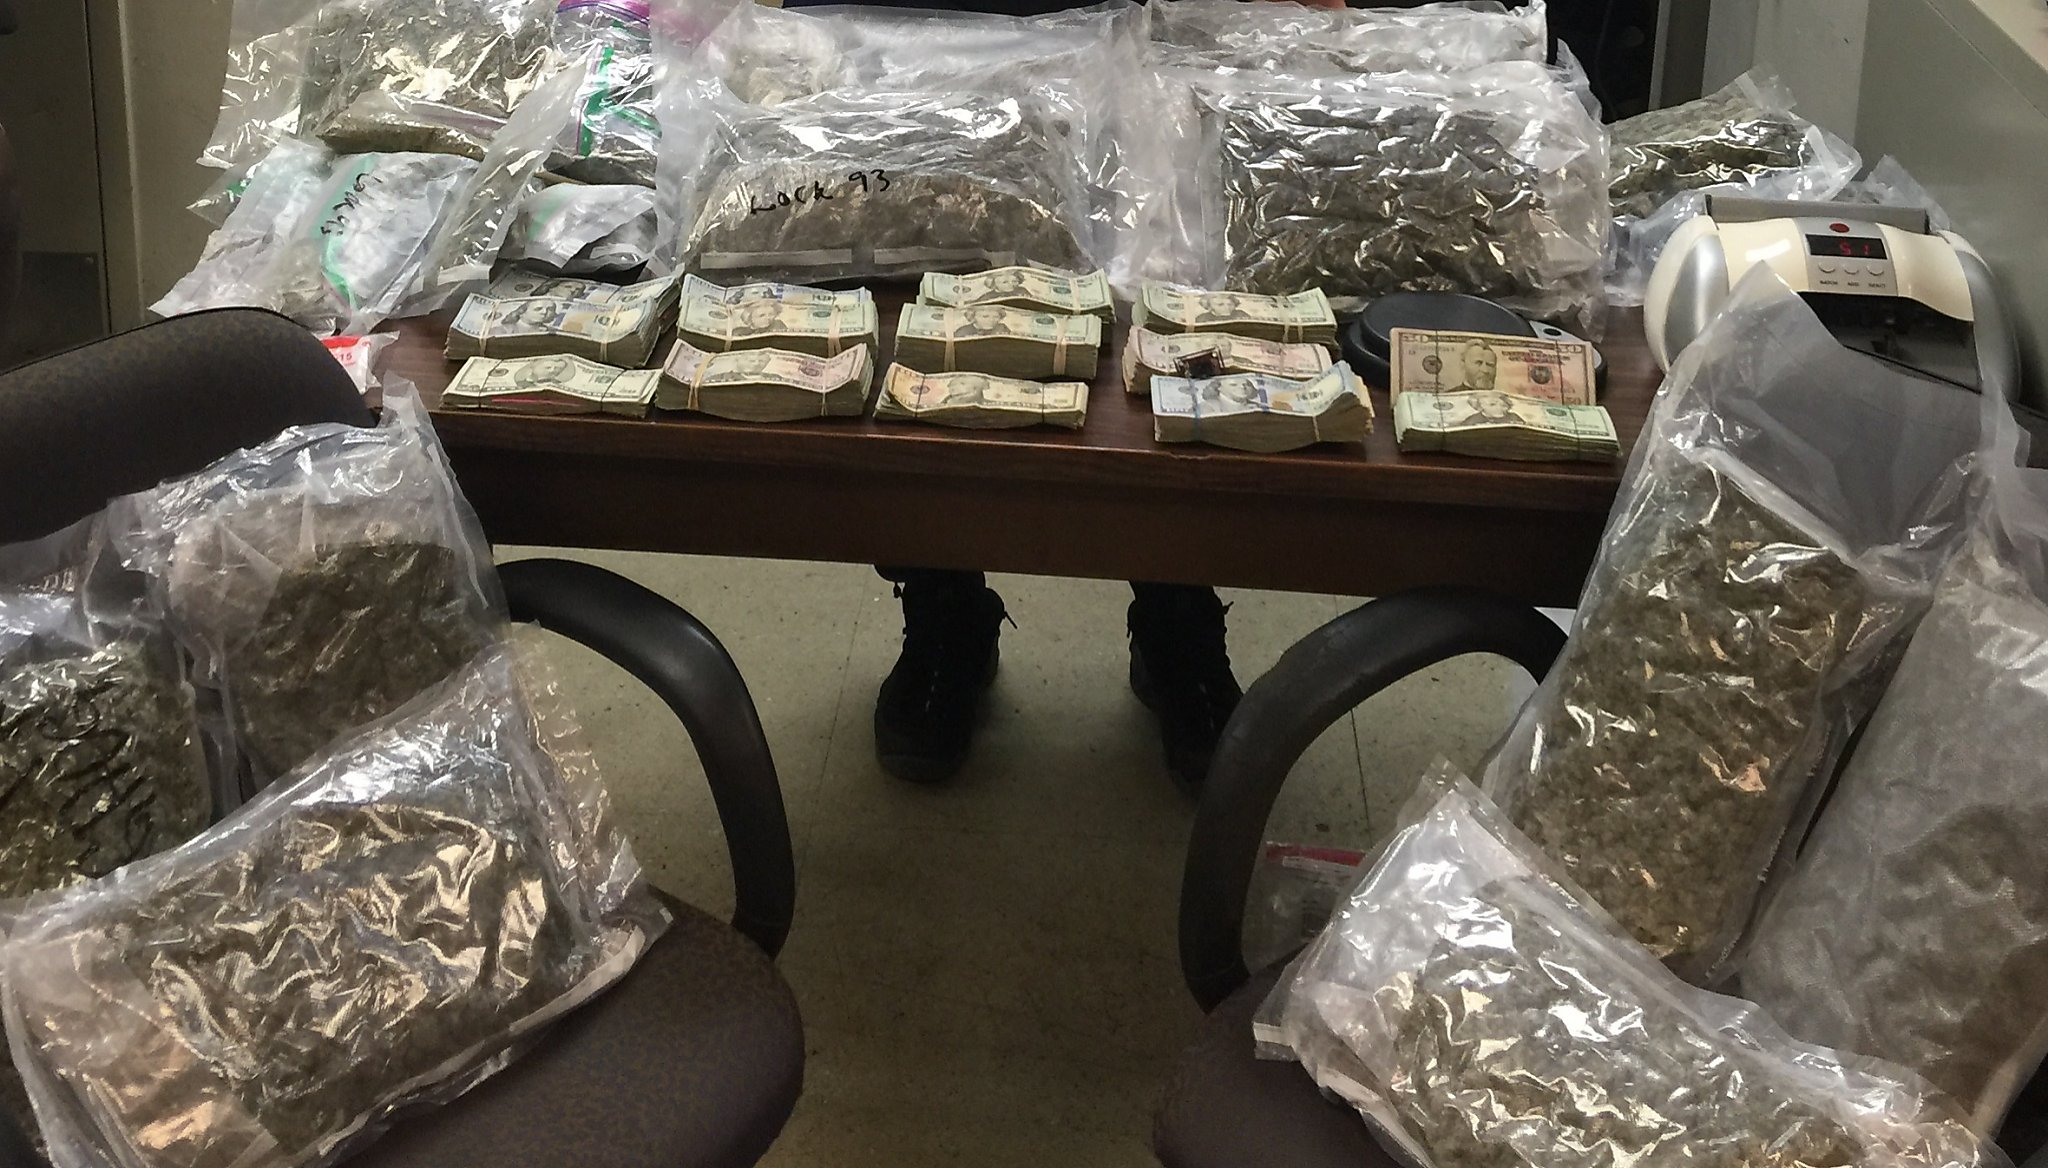 A picture of 10 lbs of confiscated marijuana and $10,000 found in relation to Jerome Weitz' national drug smuggling operation.